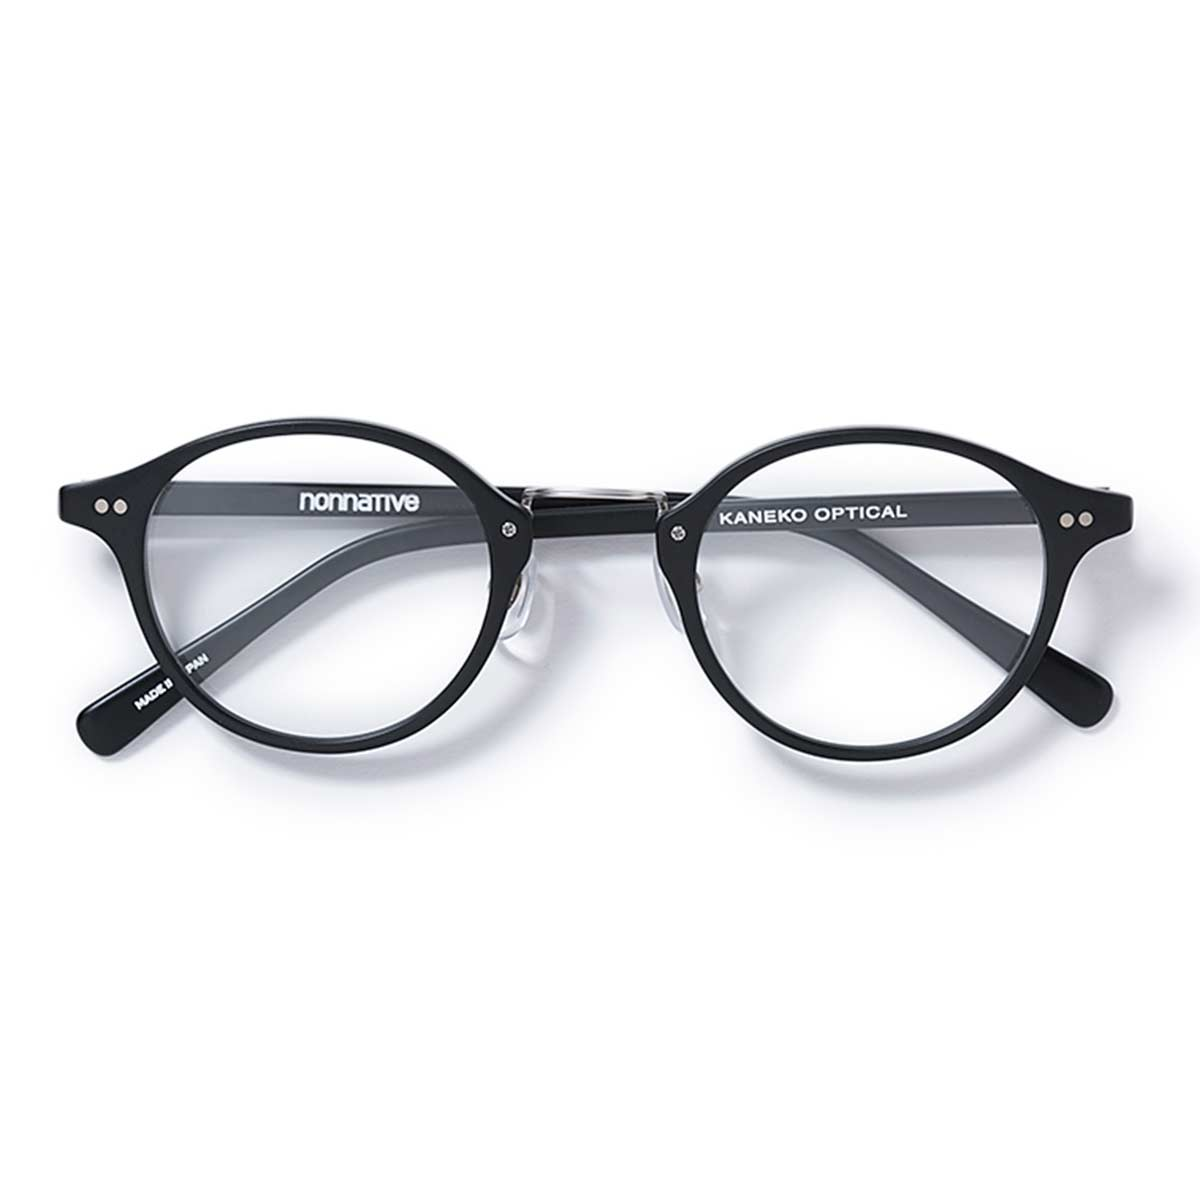 nonnative / DWELLER GLASSE by KANEKO OPTICAL -BLACK